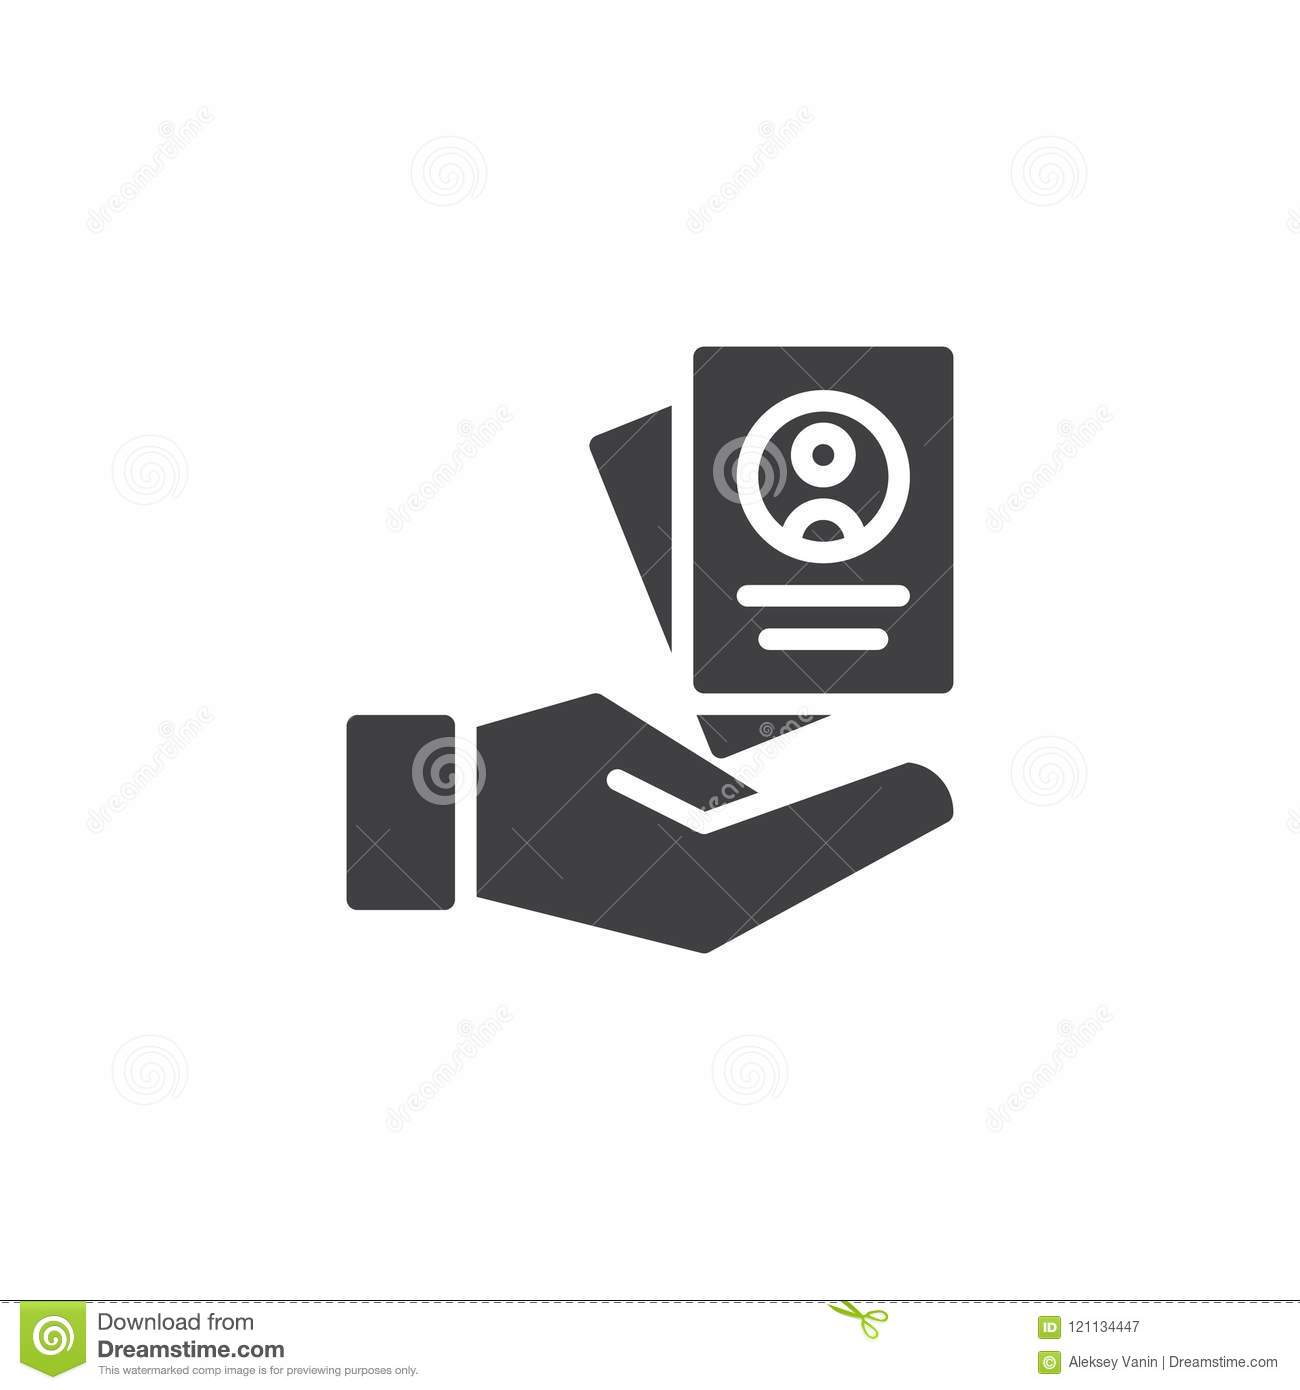 Resume Form In Hand Vector Icon Stock Vector - Illustration of pixel ...